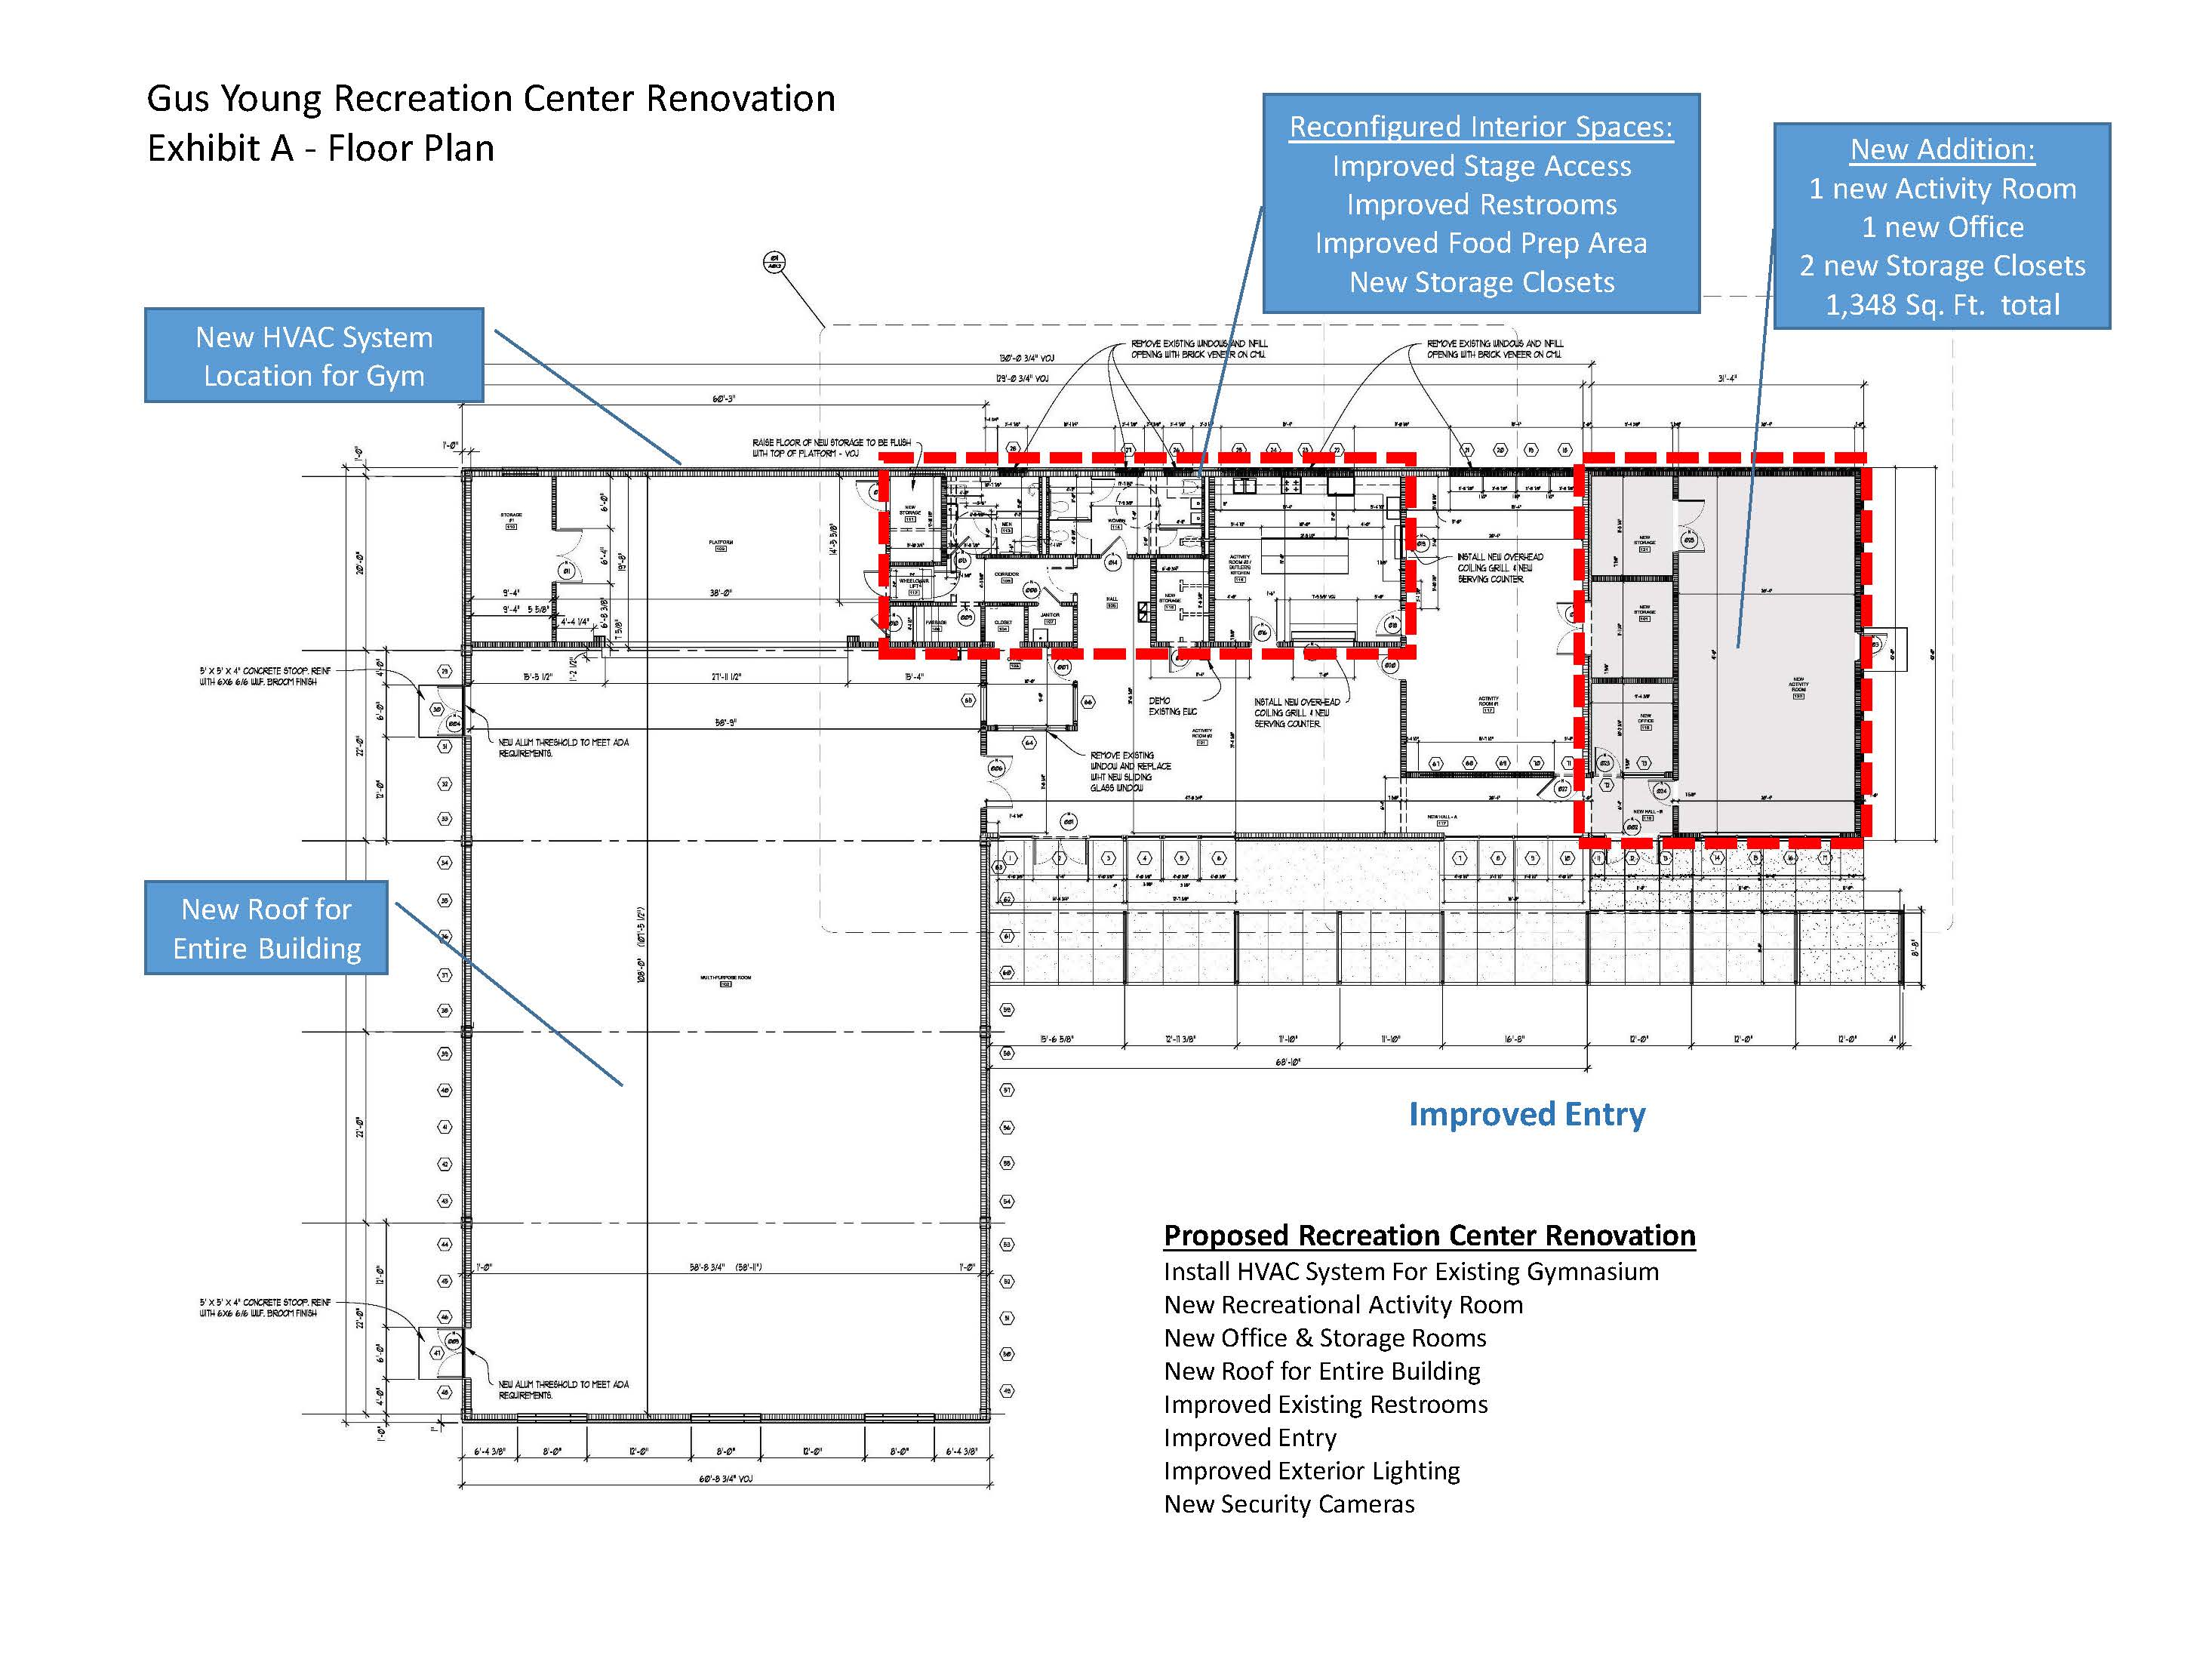 Gus Young Park 2017 Renovation Floor Plan